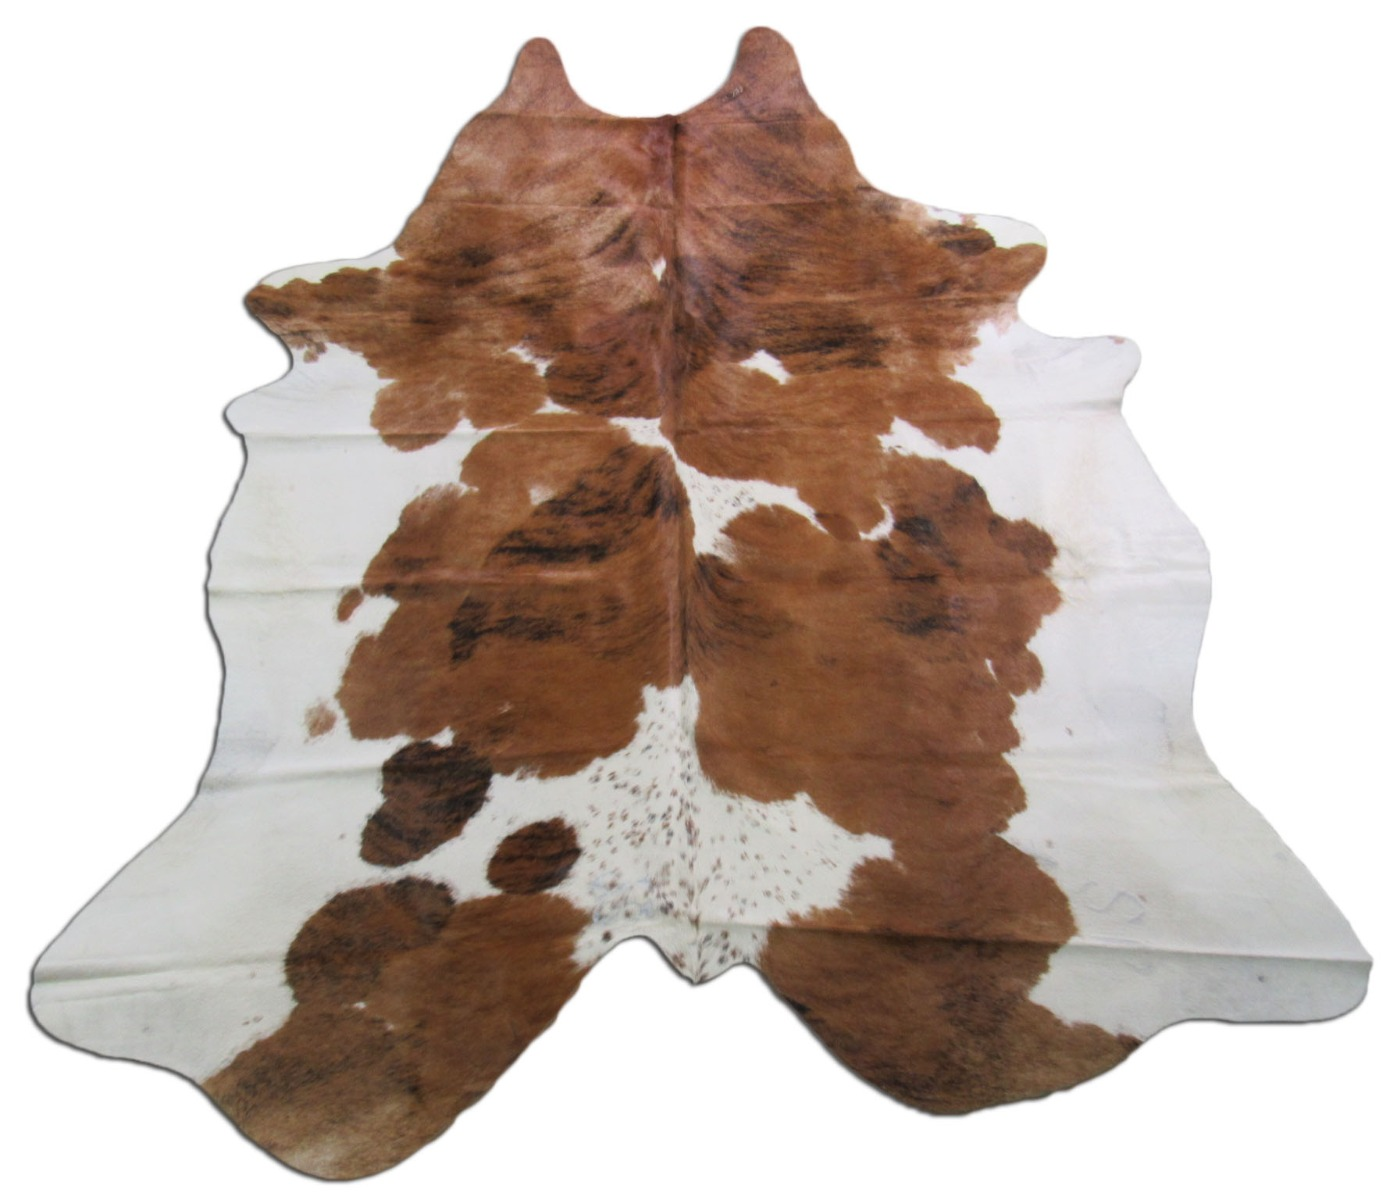 A-1249 Tricolor Speckled Cowhide Rug Size: 7 1/2' X 7 1/2'